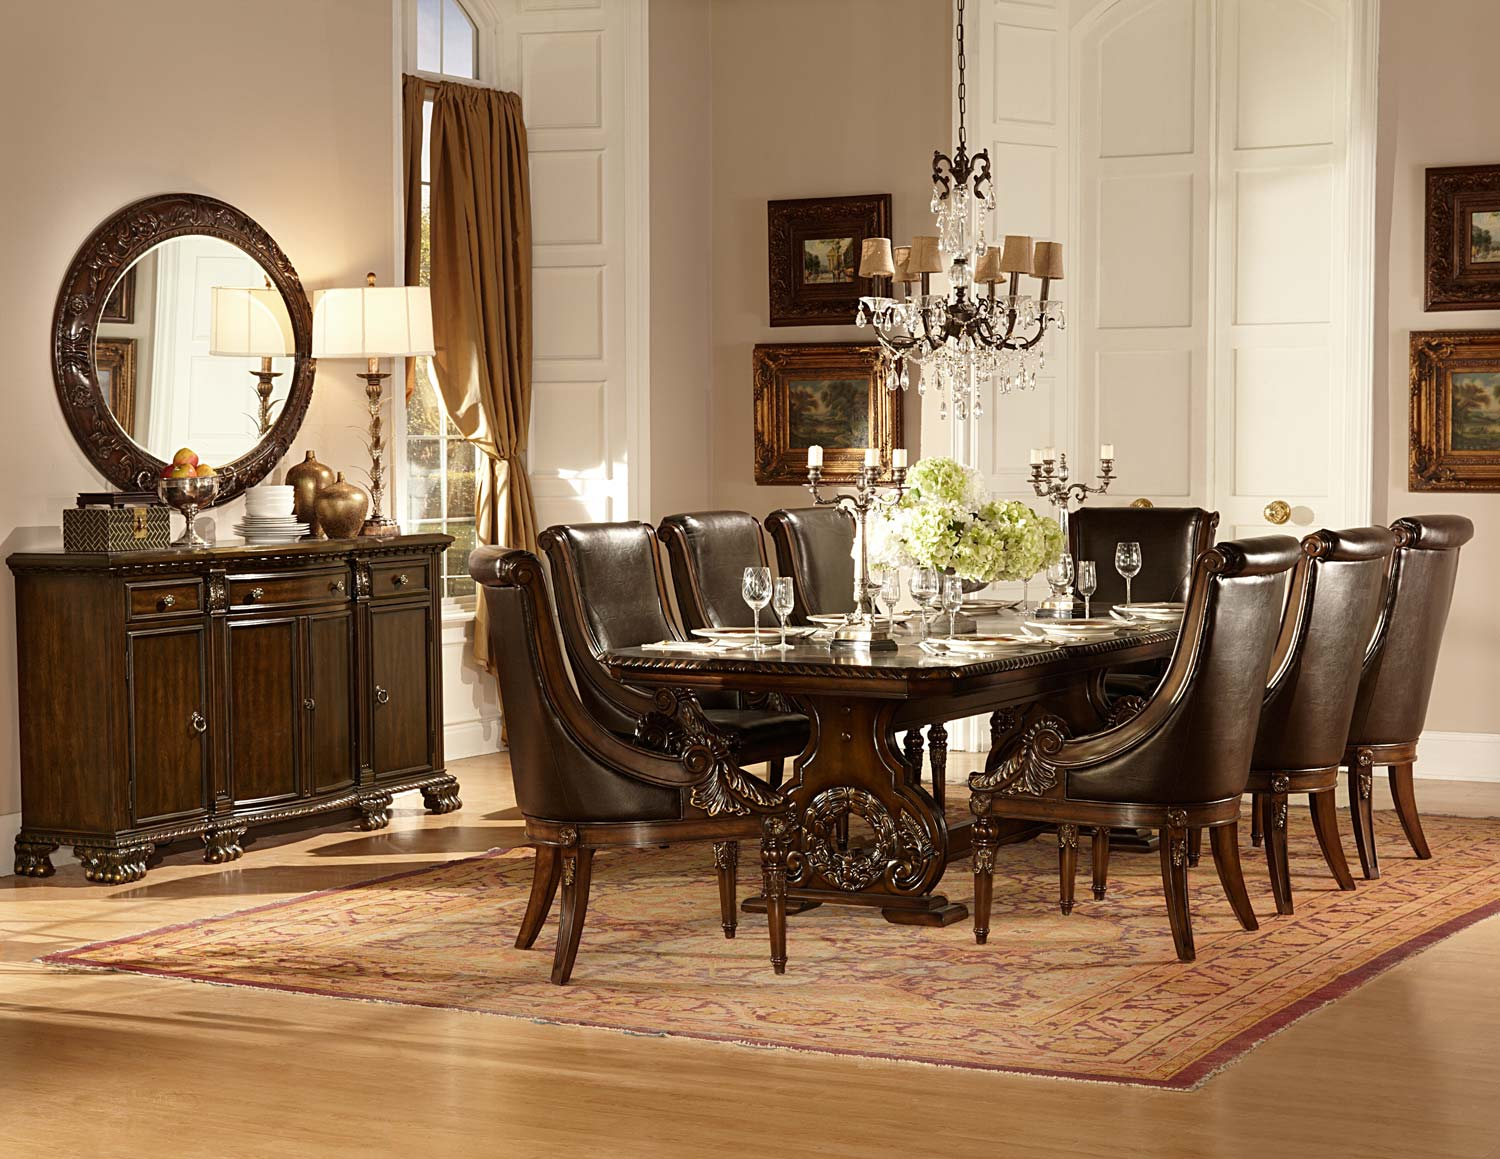 Homelegance Orleans Trestle Dining Set - Cherry